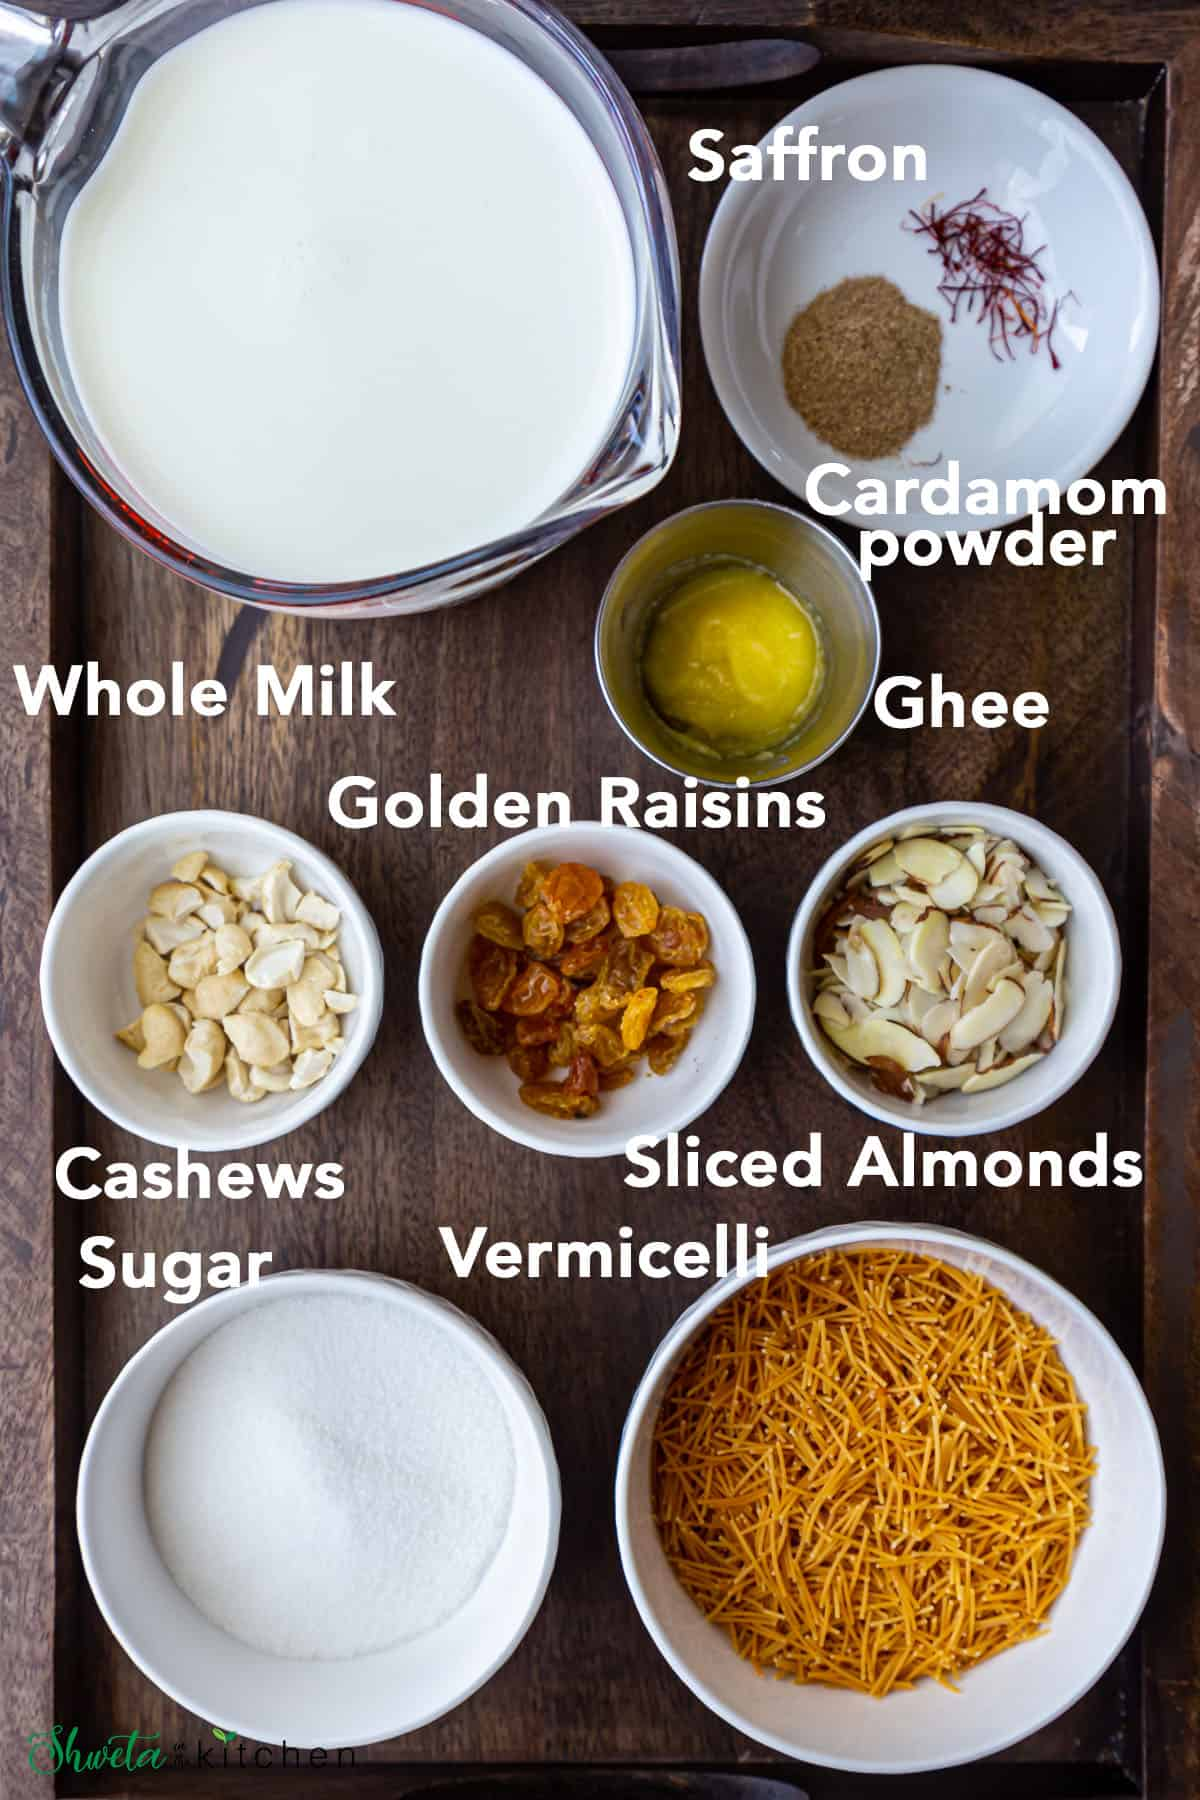 Vermicelli Kheer ingredients in white bowls on wooden tray